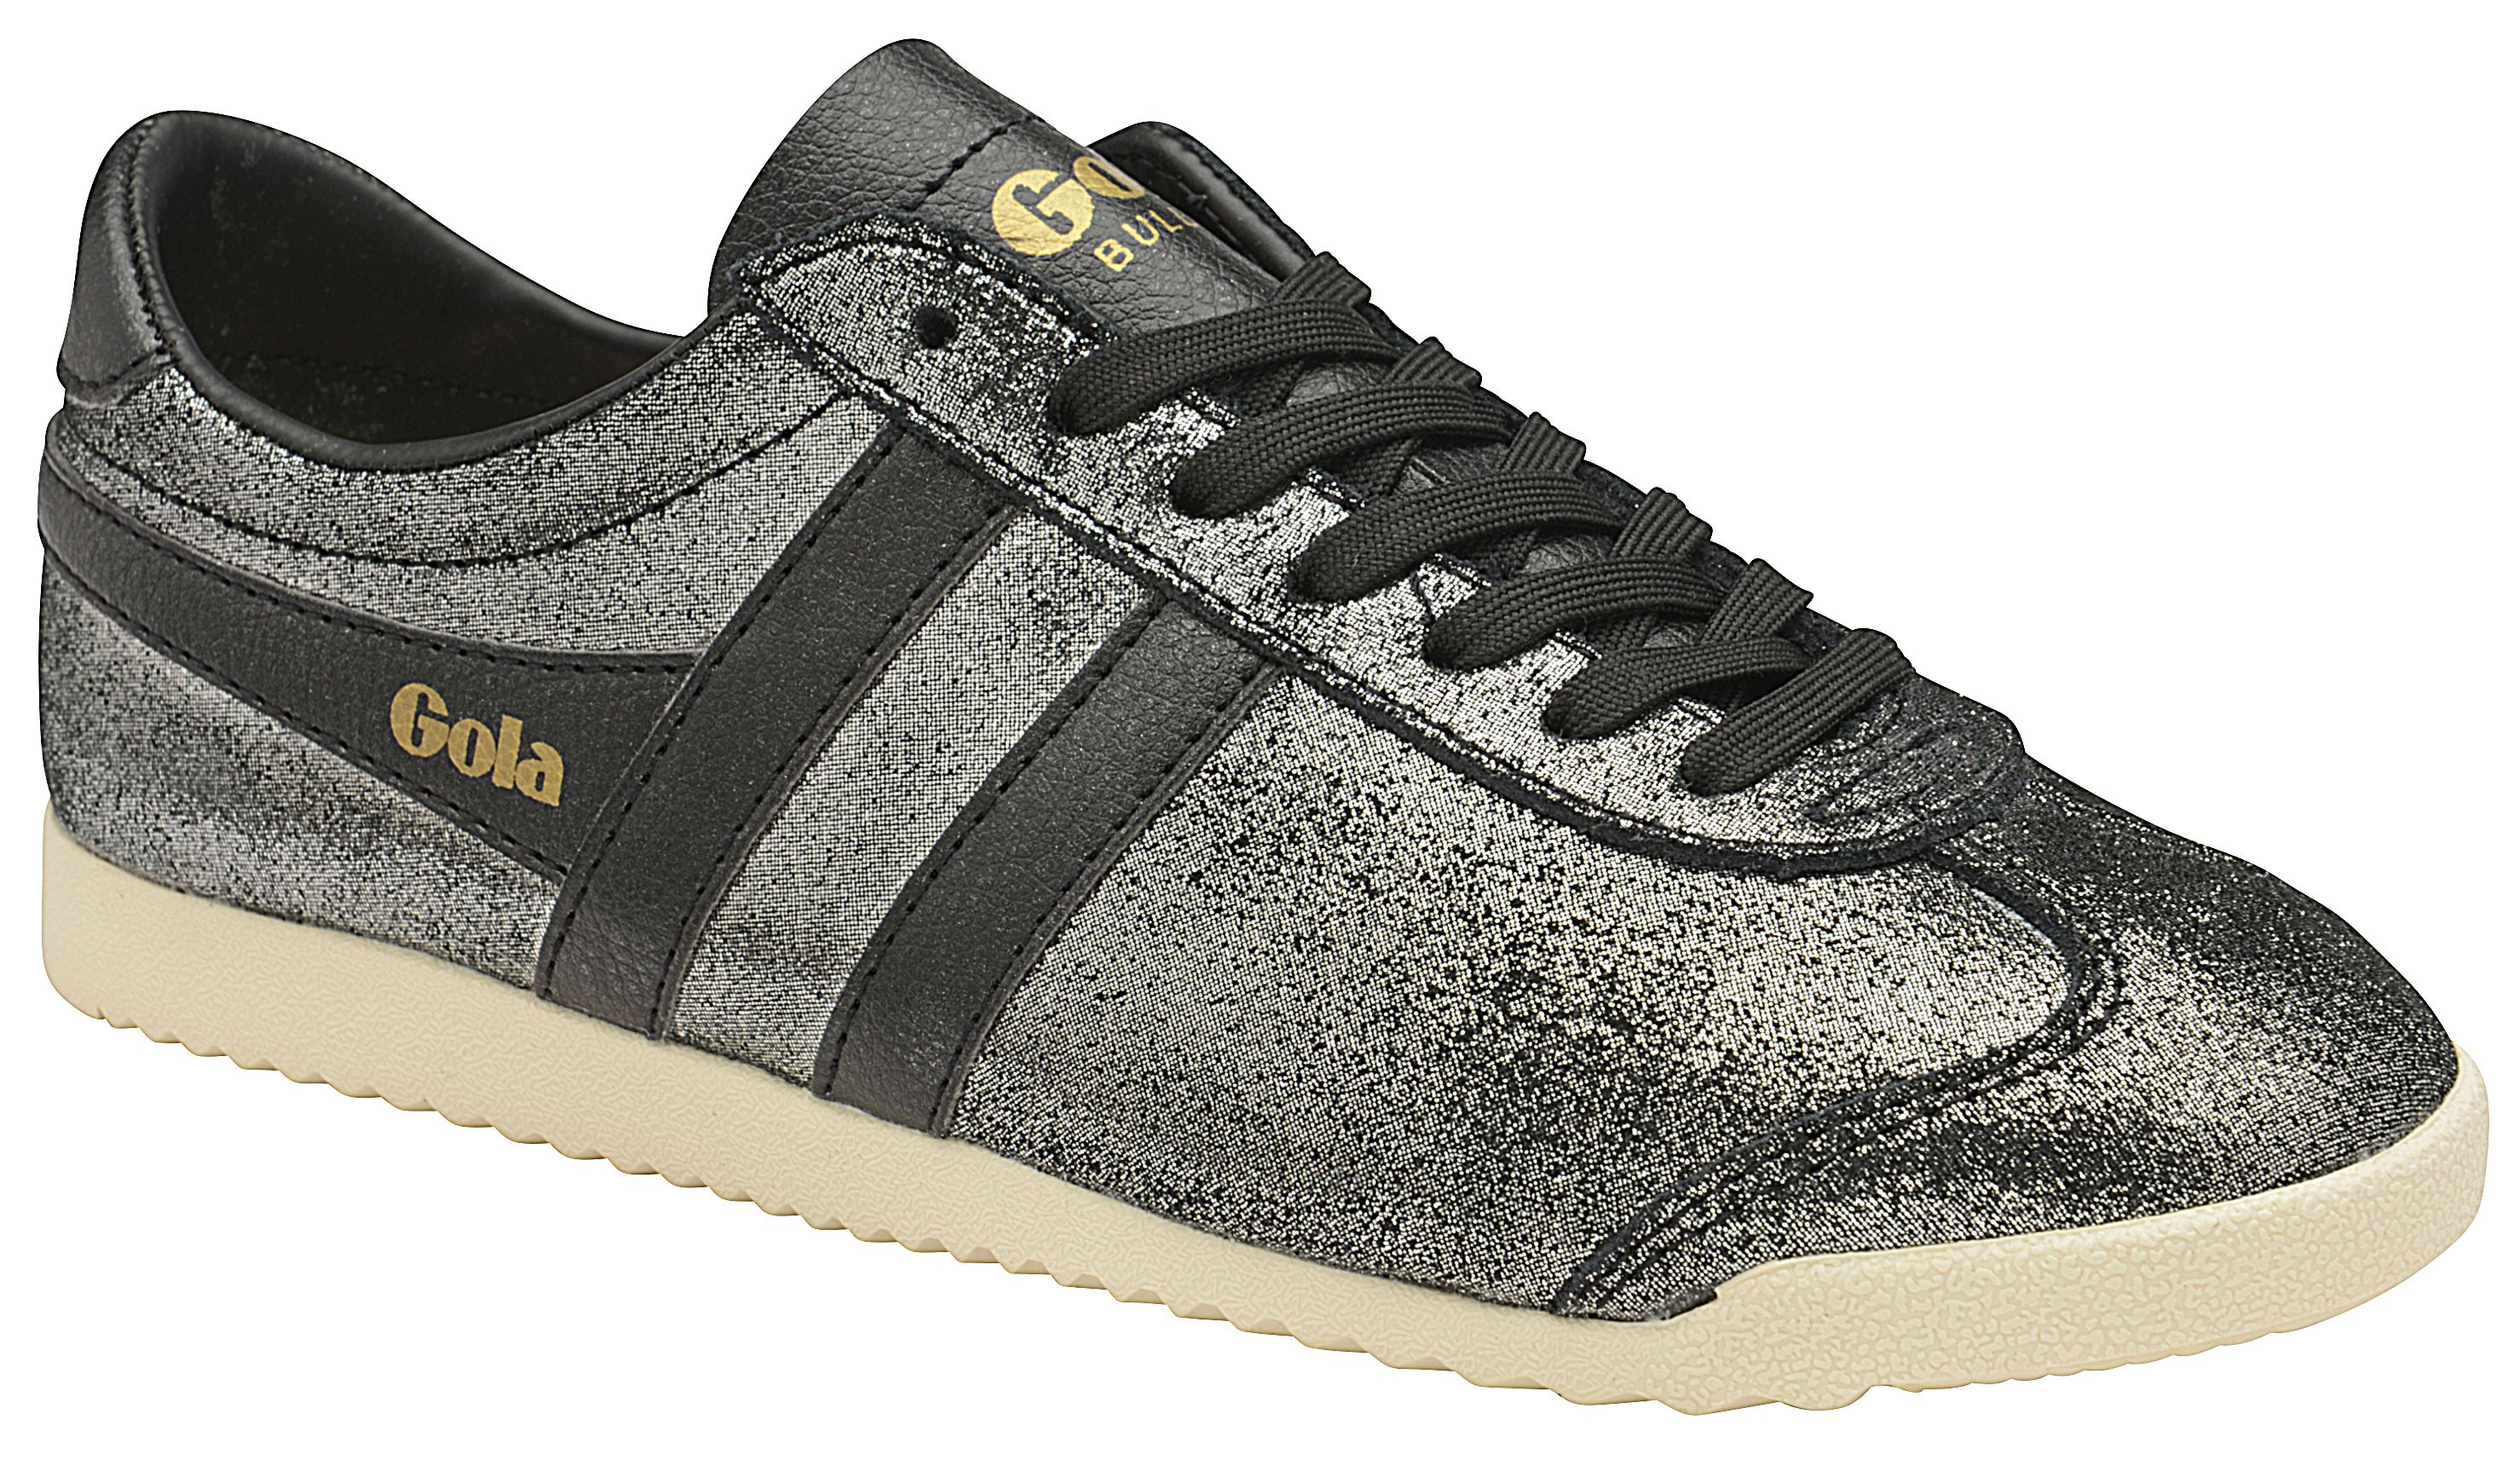 Gola Bullet Glitter Lace Up Trainers, Black